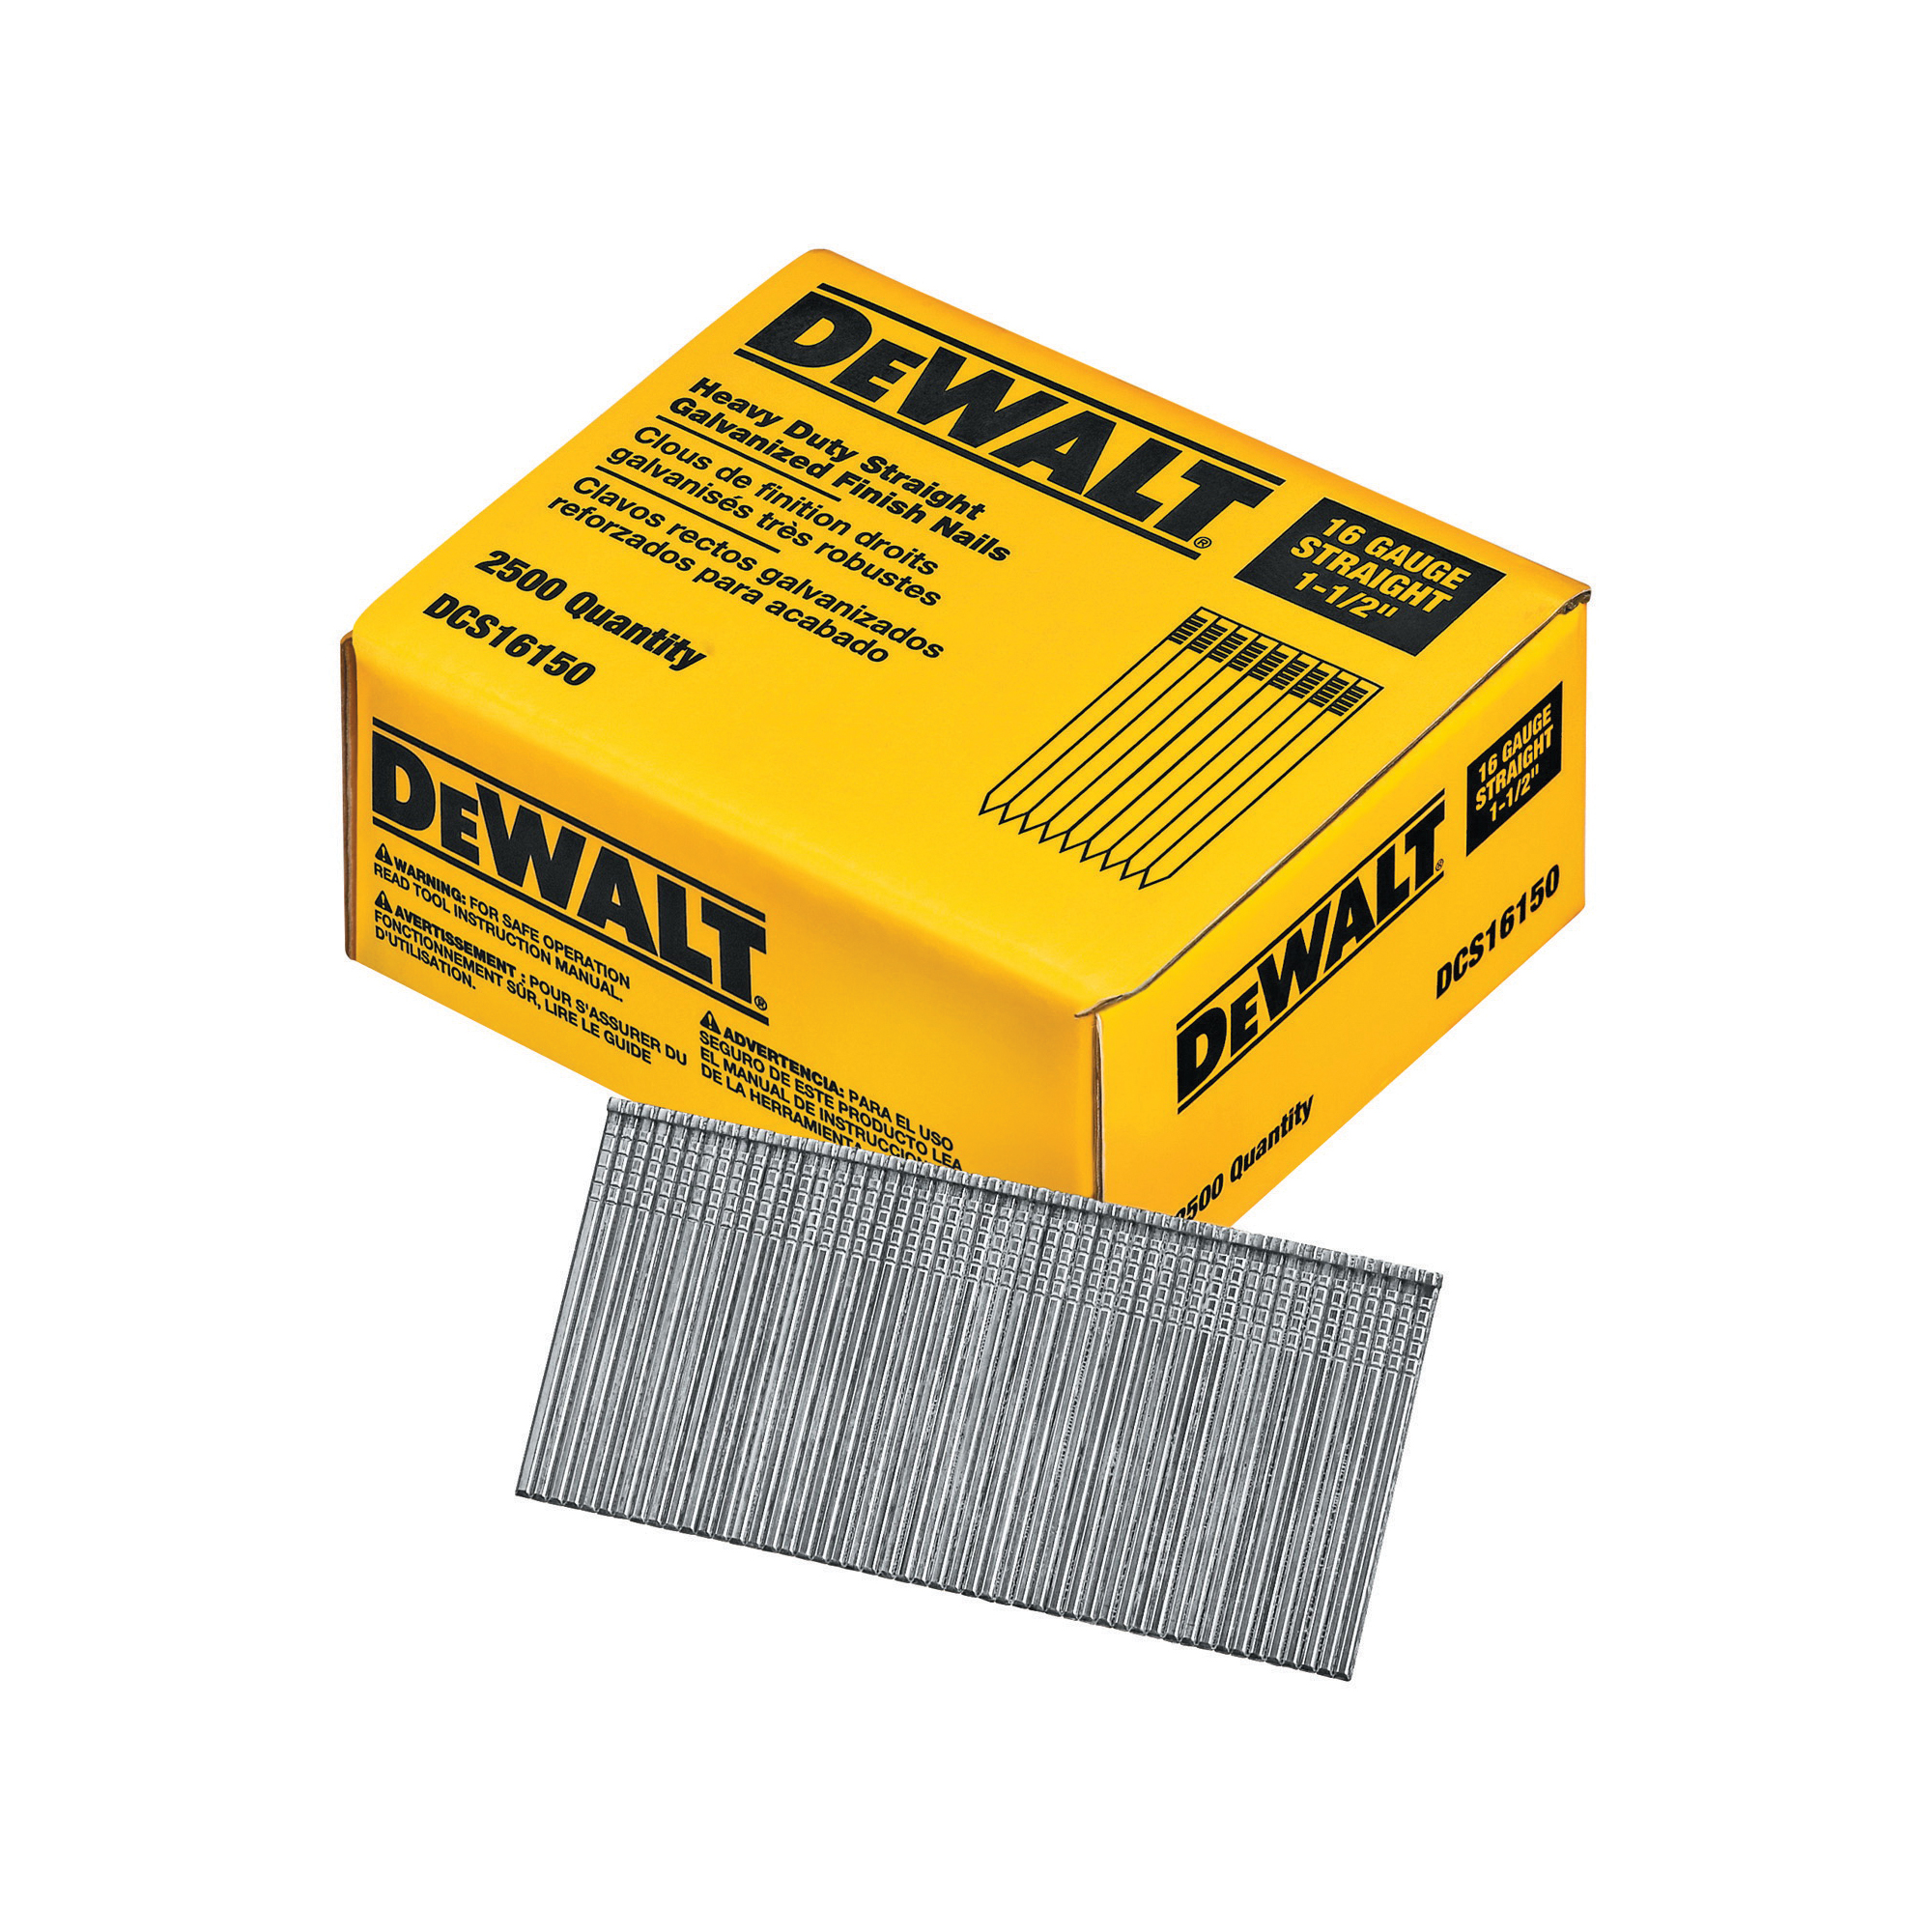 DeWALT® DCA16125 Adhesive Heavy Duty Angled Finish Nail, 1-1/4 in L, 16 ga, Bright/Galvanized, Steel